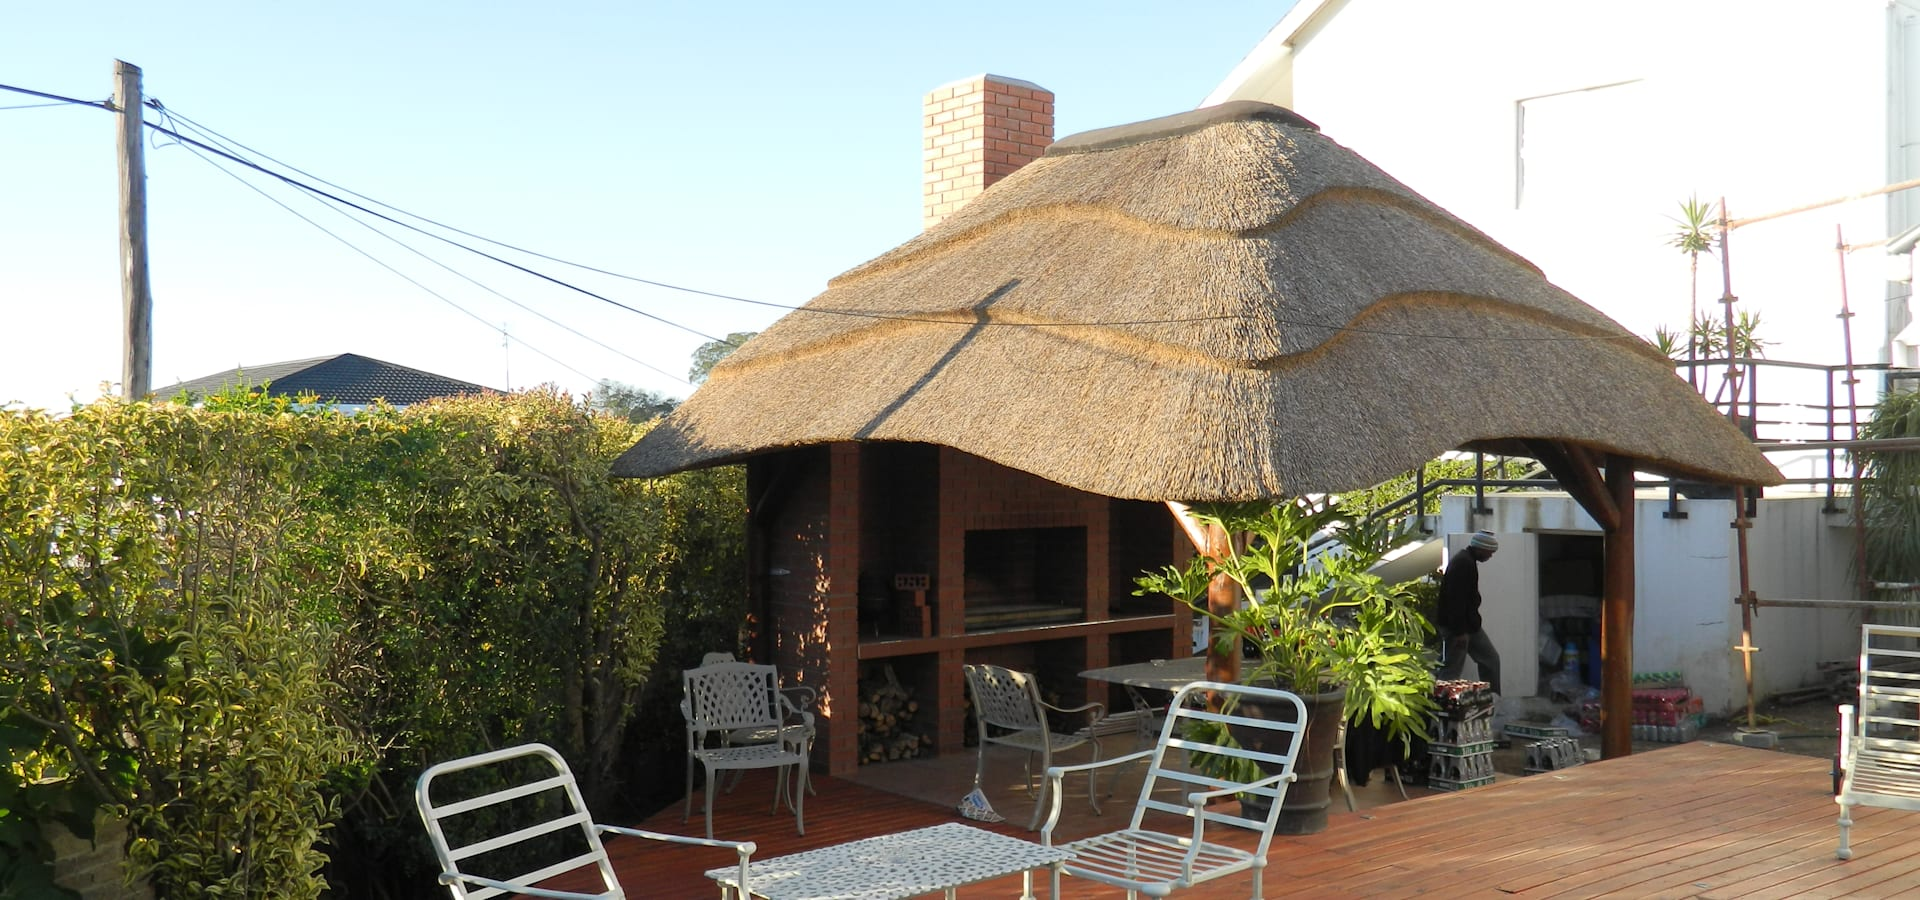 Thatch Lapa Amp Entertainment Areas By Cintsa Thatching